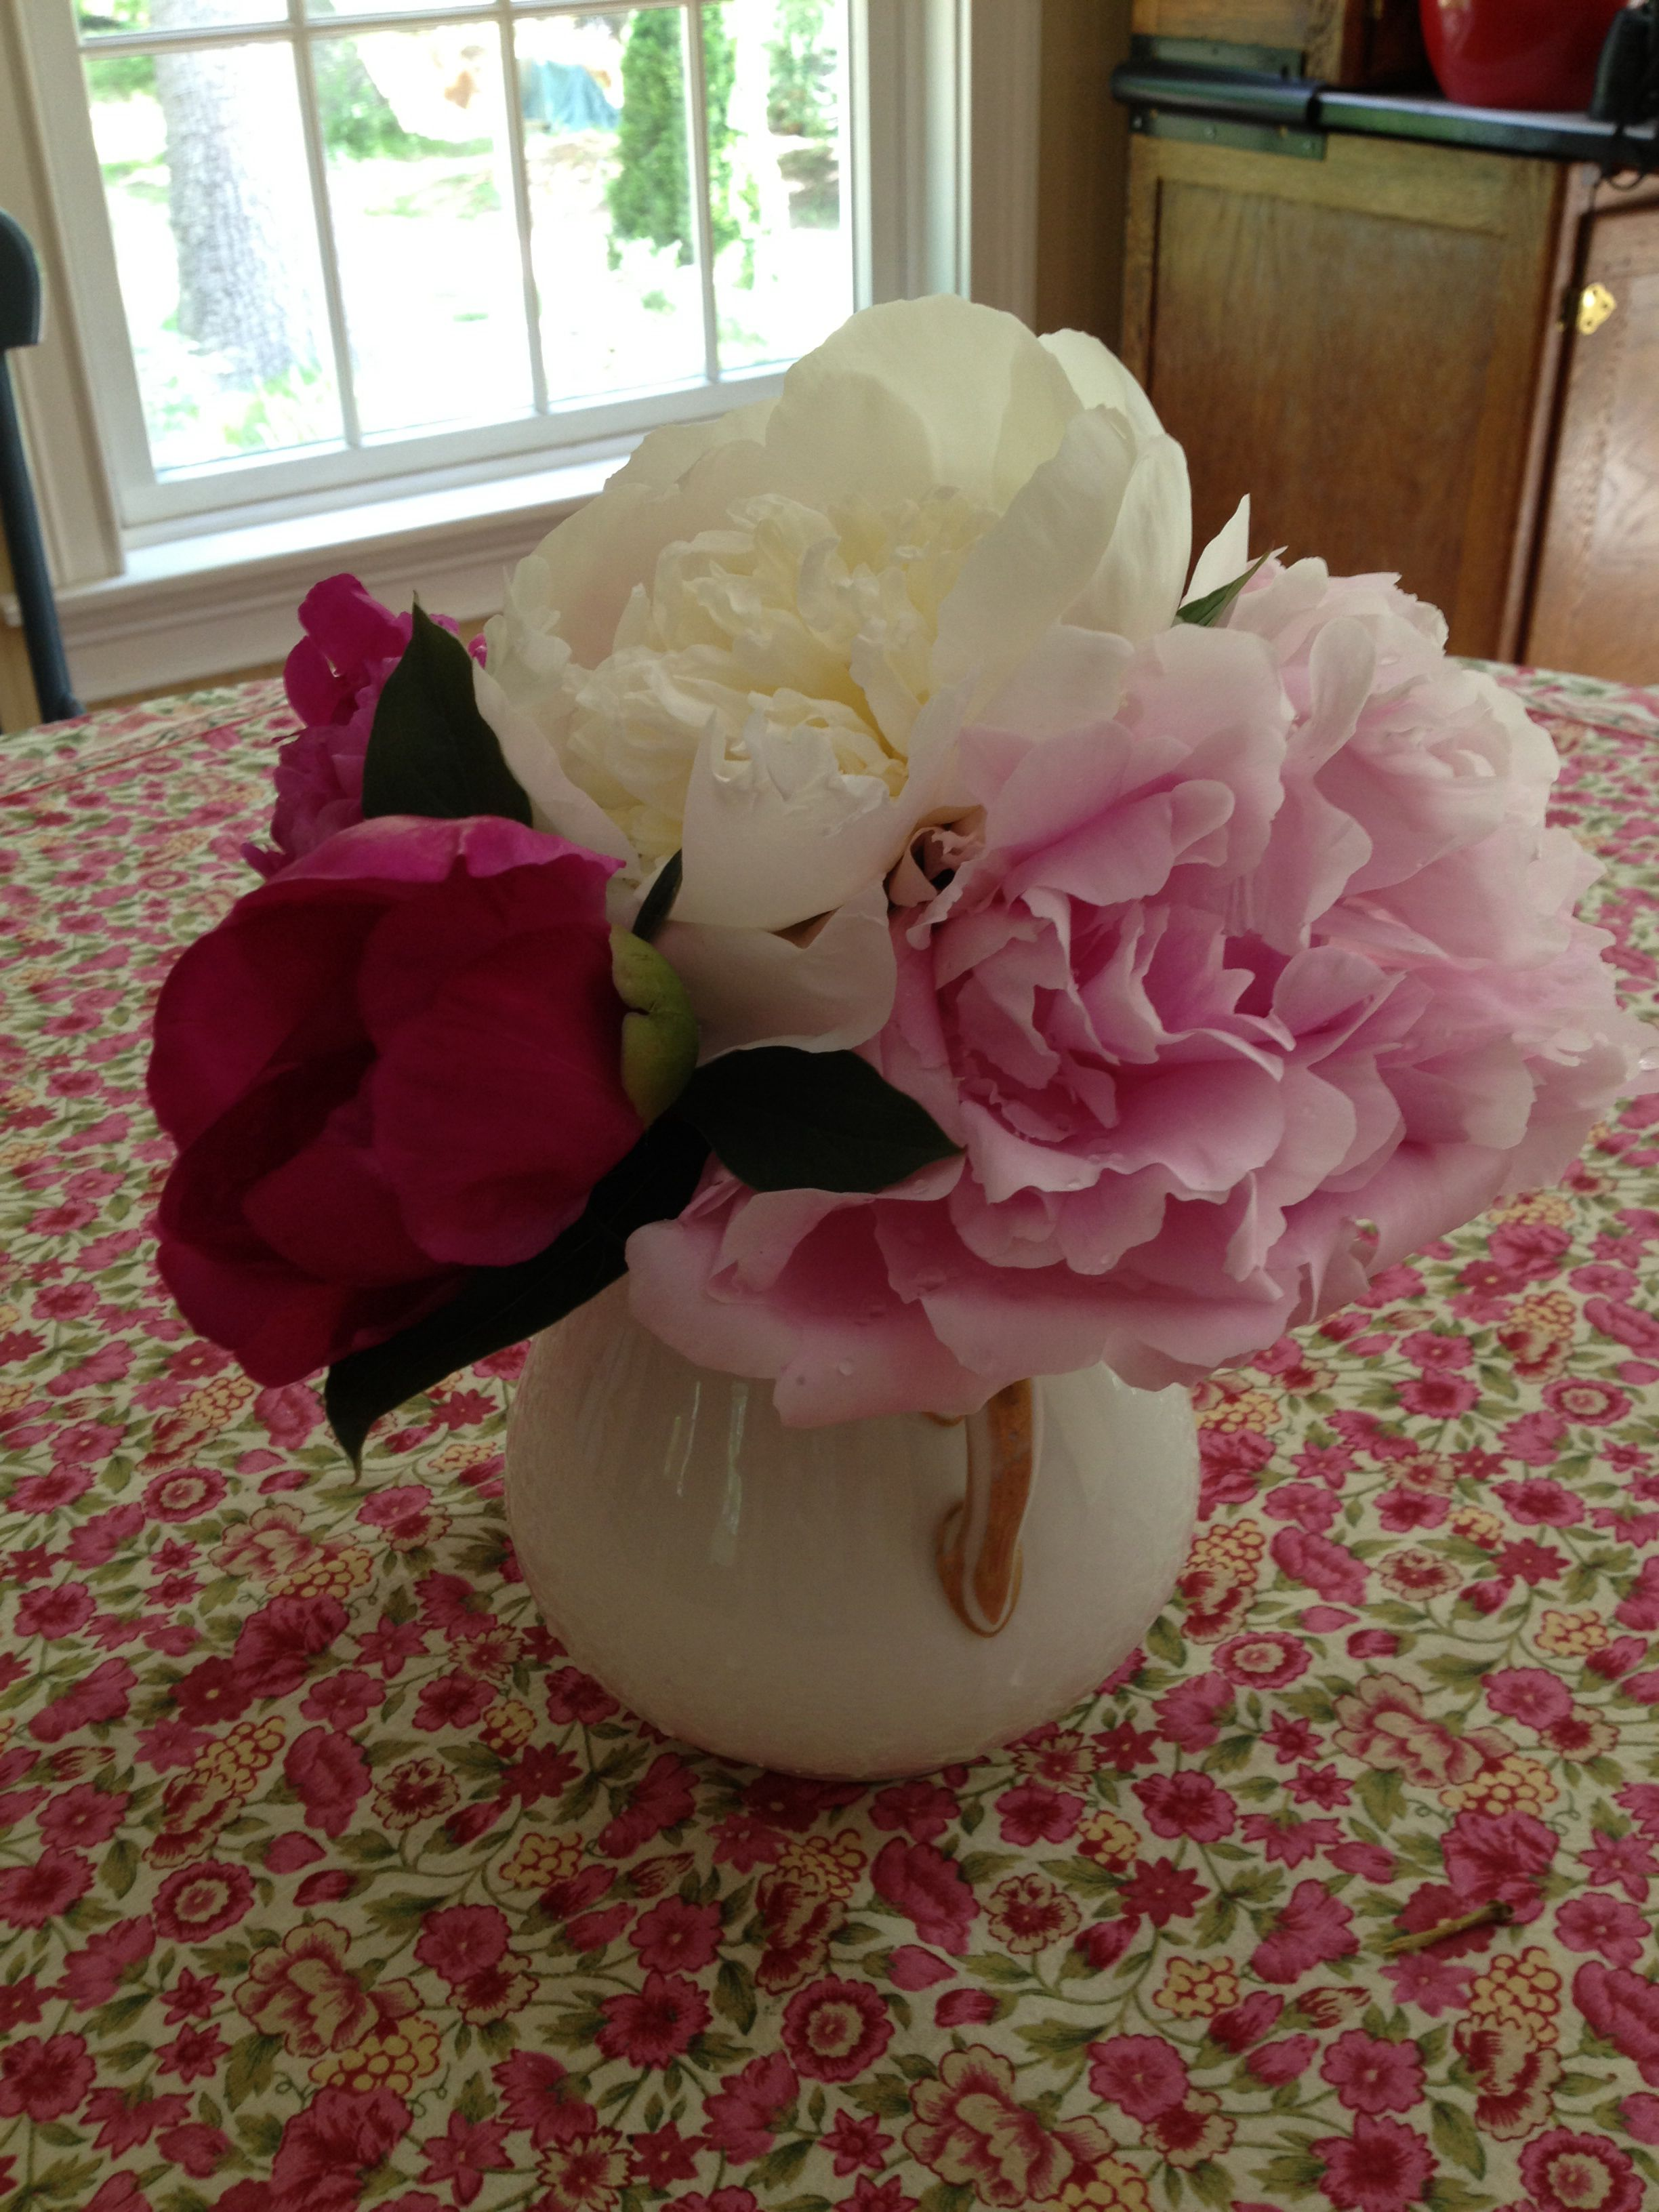 Peonies on pink table cloth